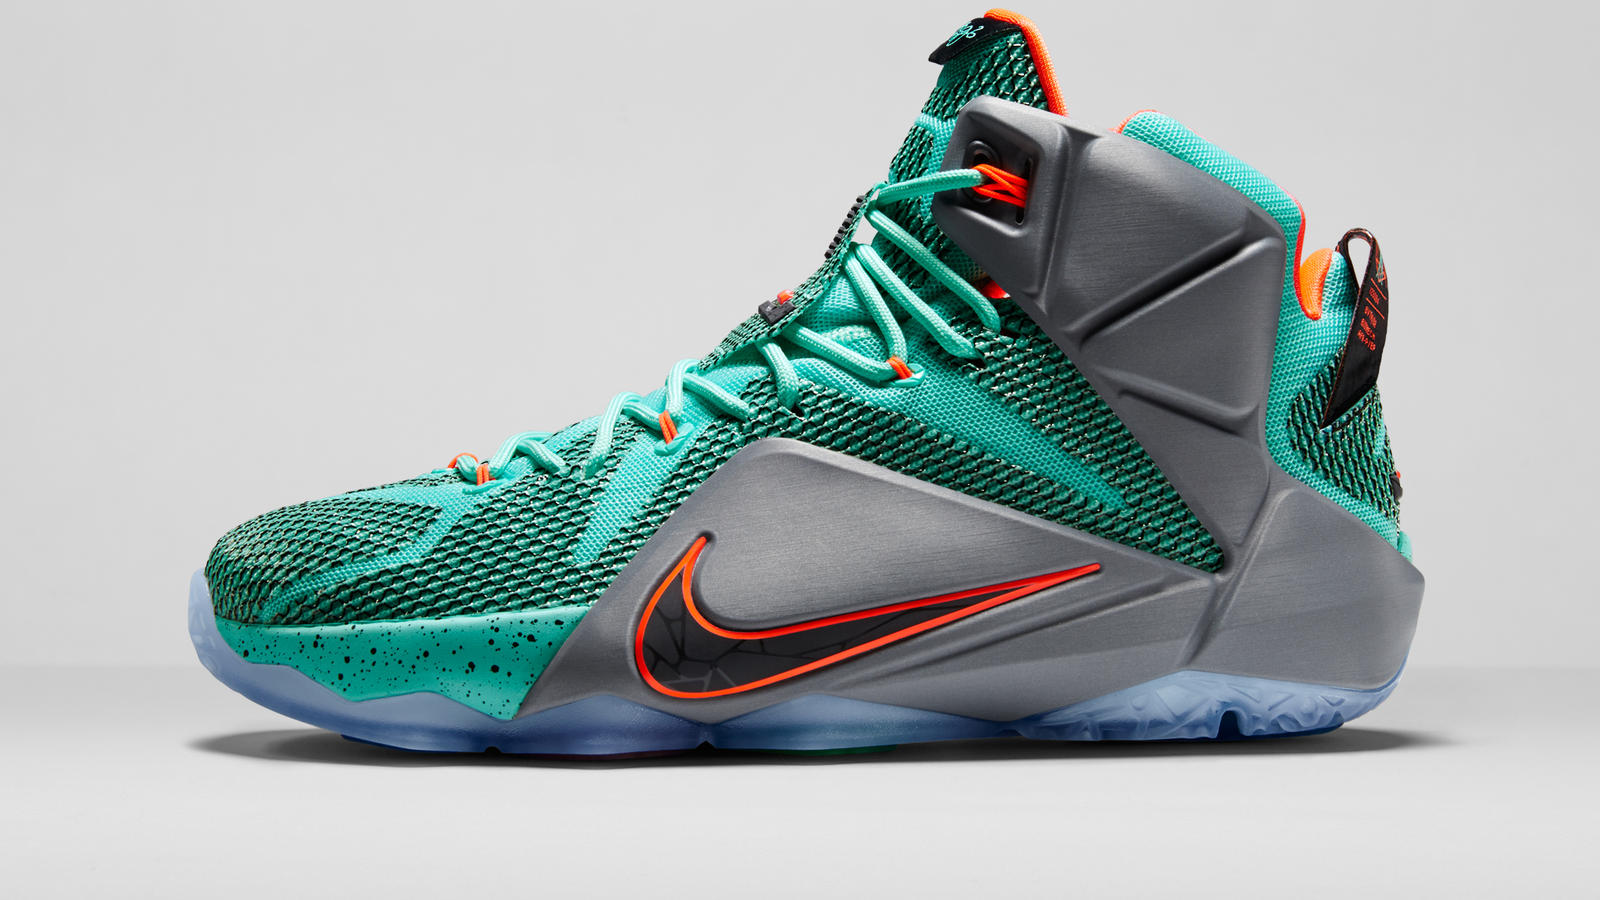 finest selection 7700b 15c43 ... inexpensive nike lebron 12 engineered for explosiveness nike news 8834b  ae85c